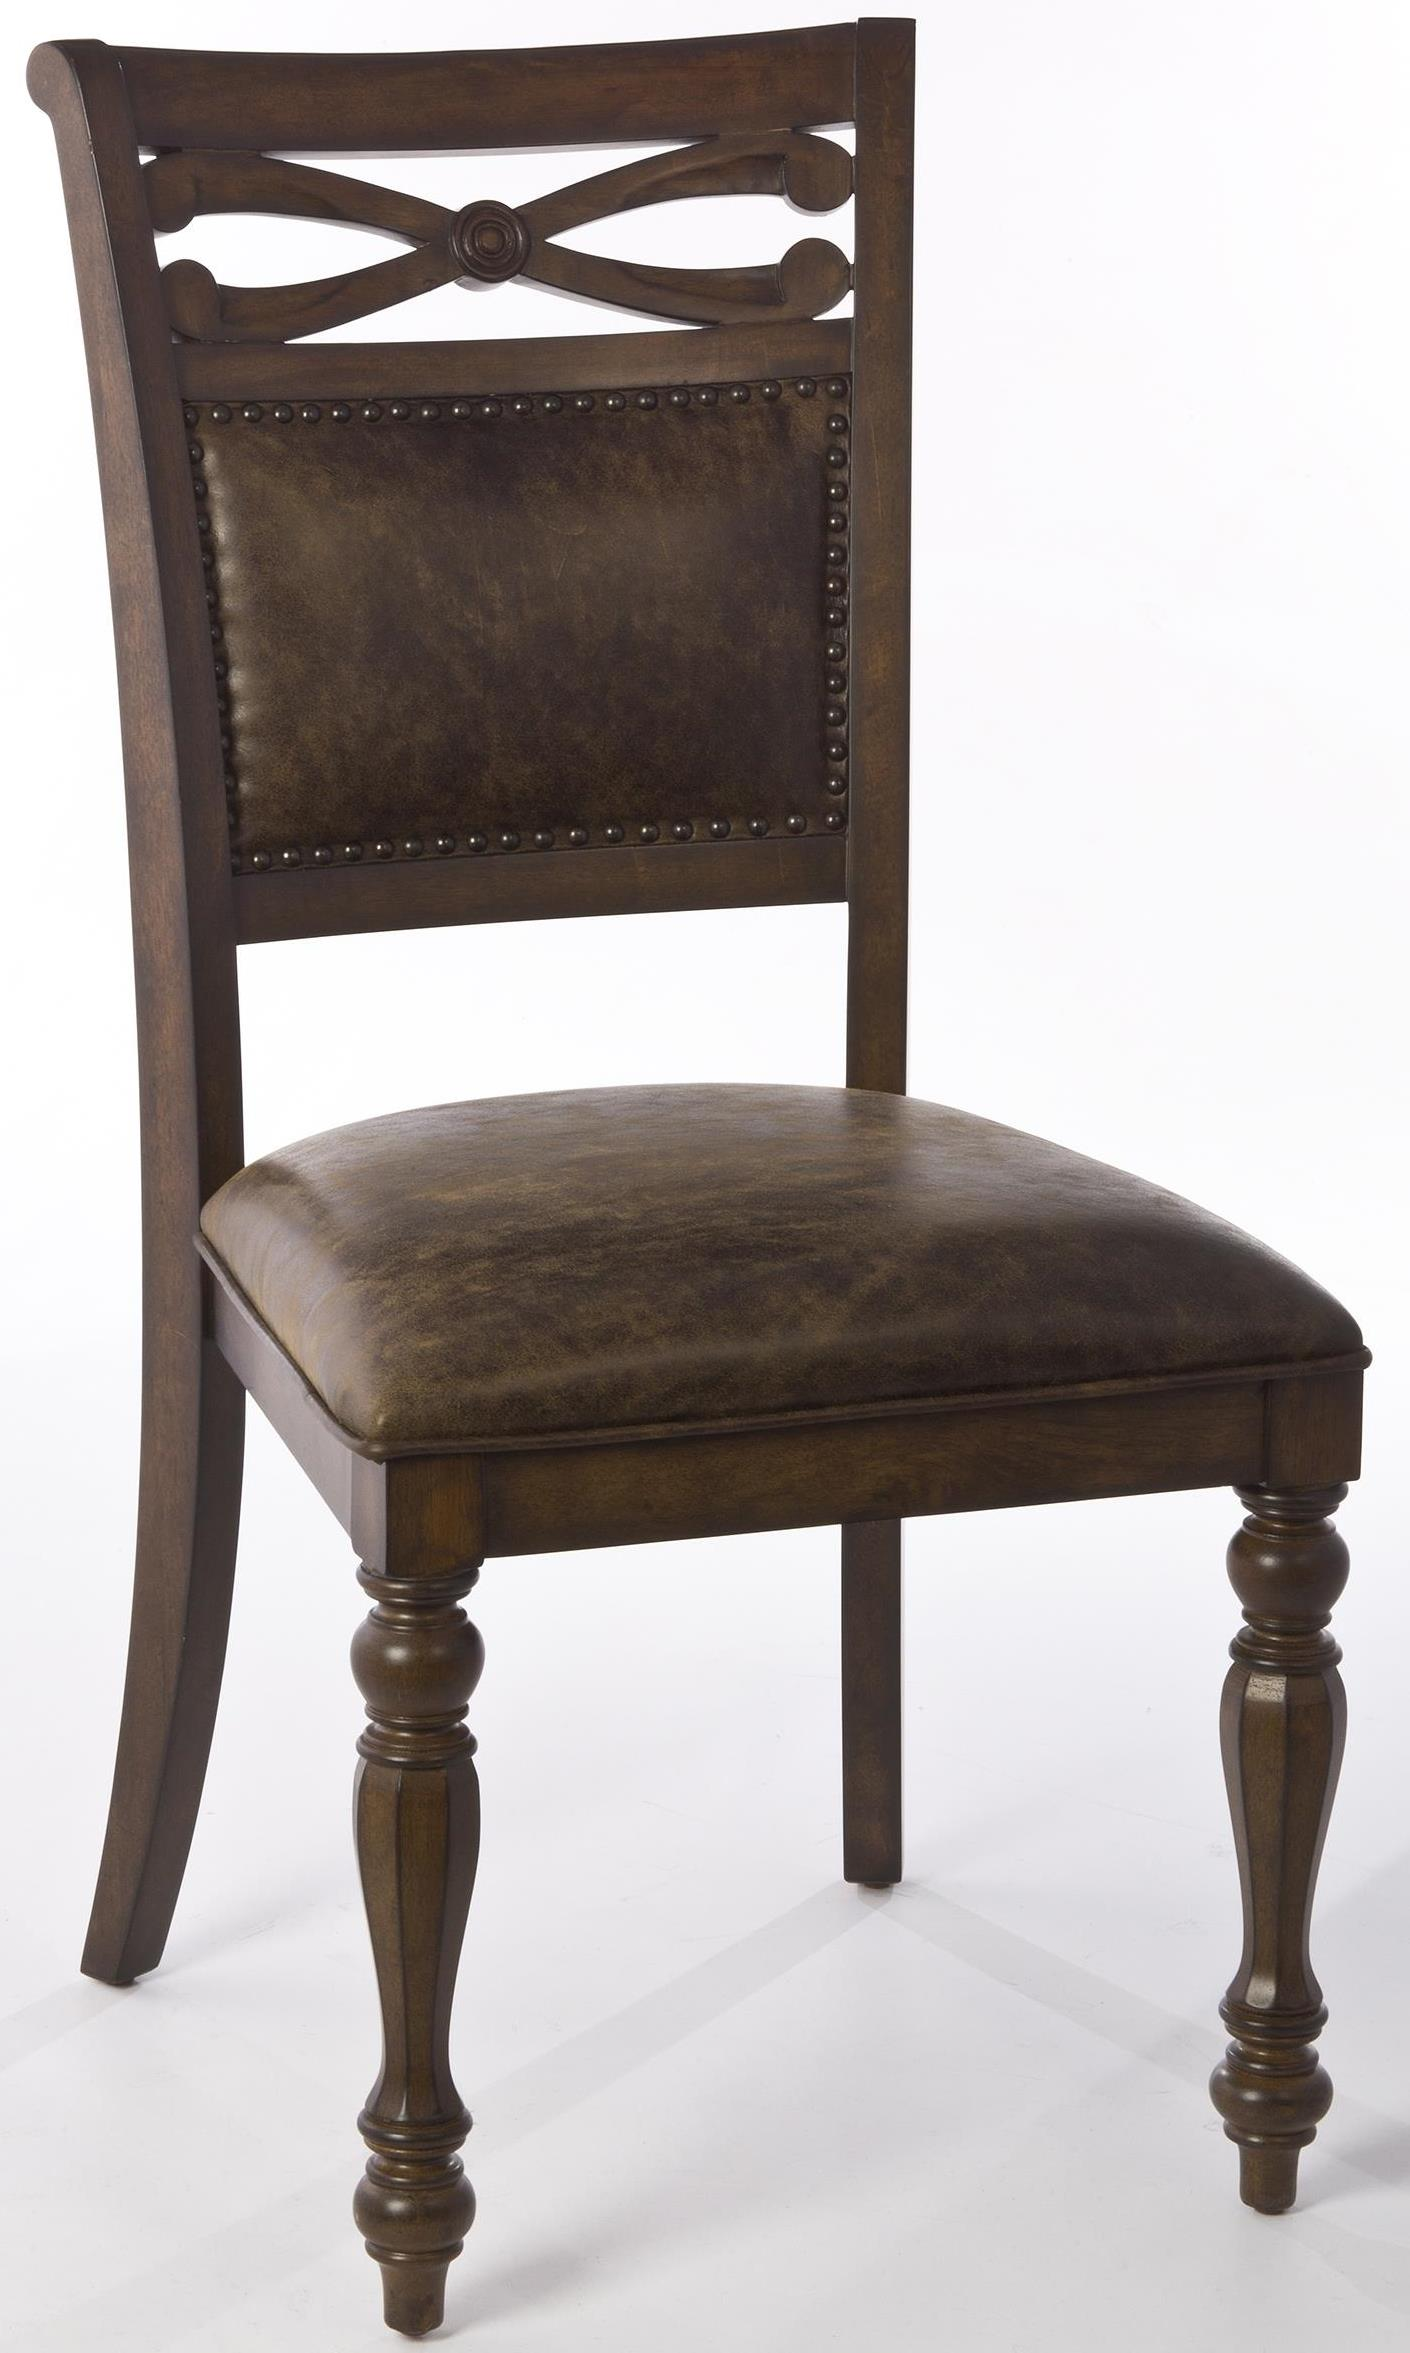 springs for chairs bentwood cane seat hillsdale seaton 5484 802 dining side chair with